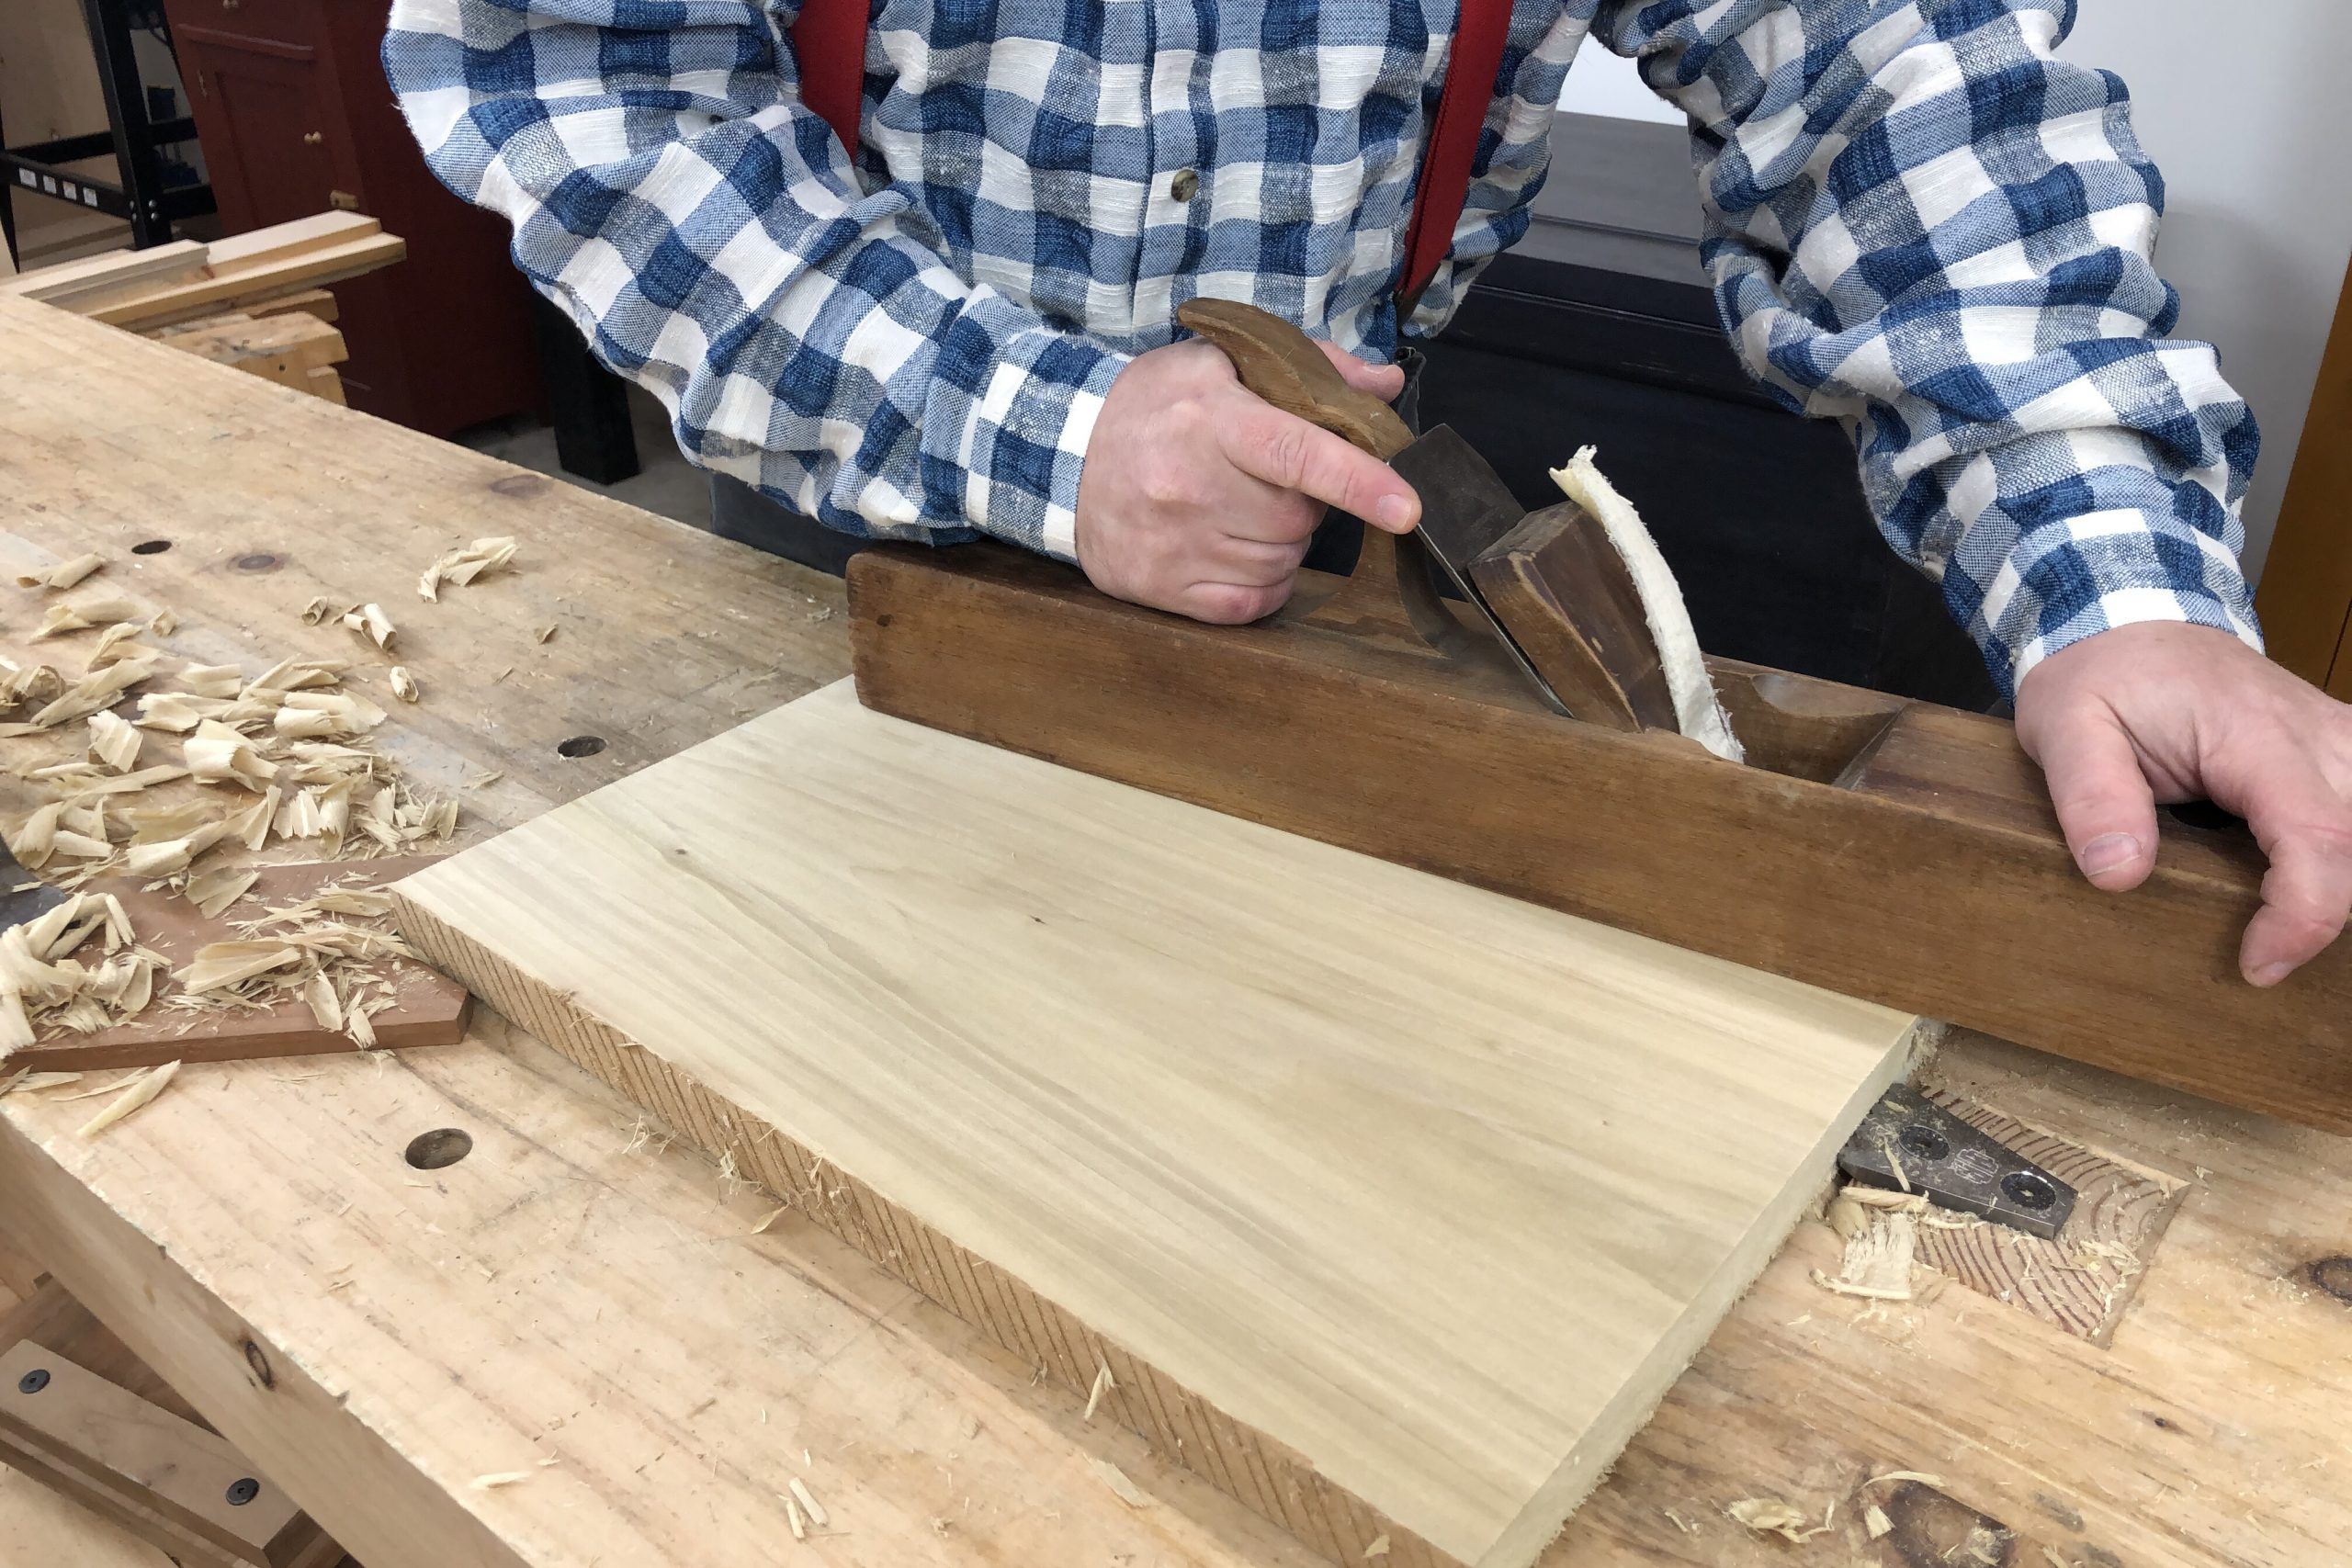 Planing the Face of a Board Flat with a Hand Plane